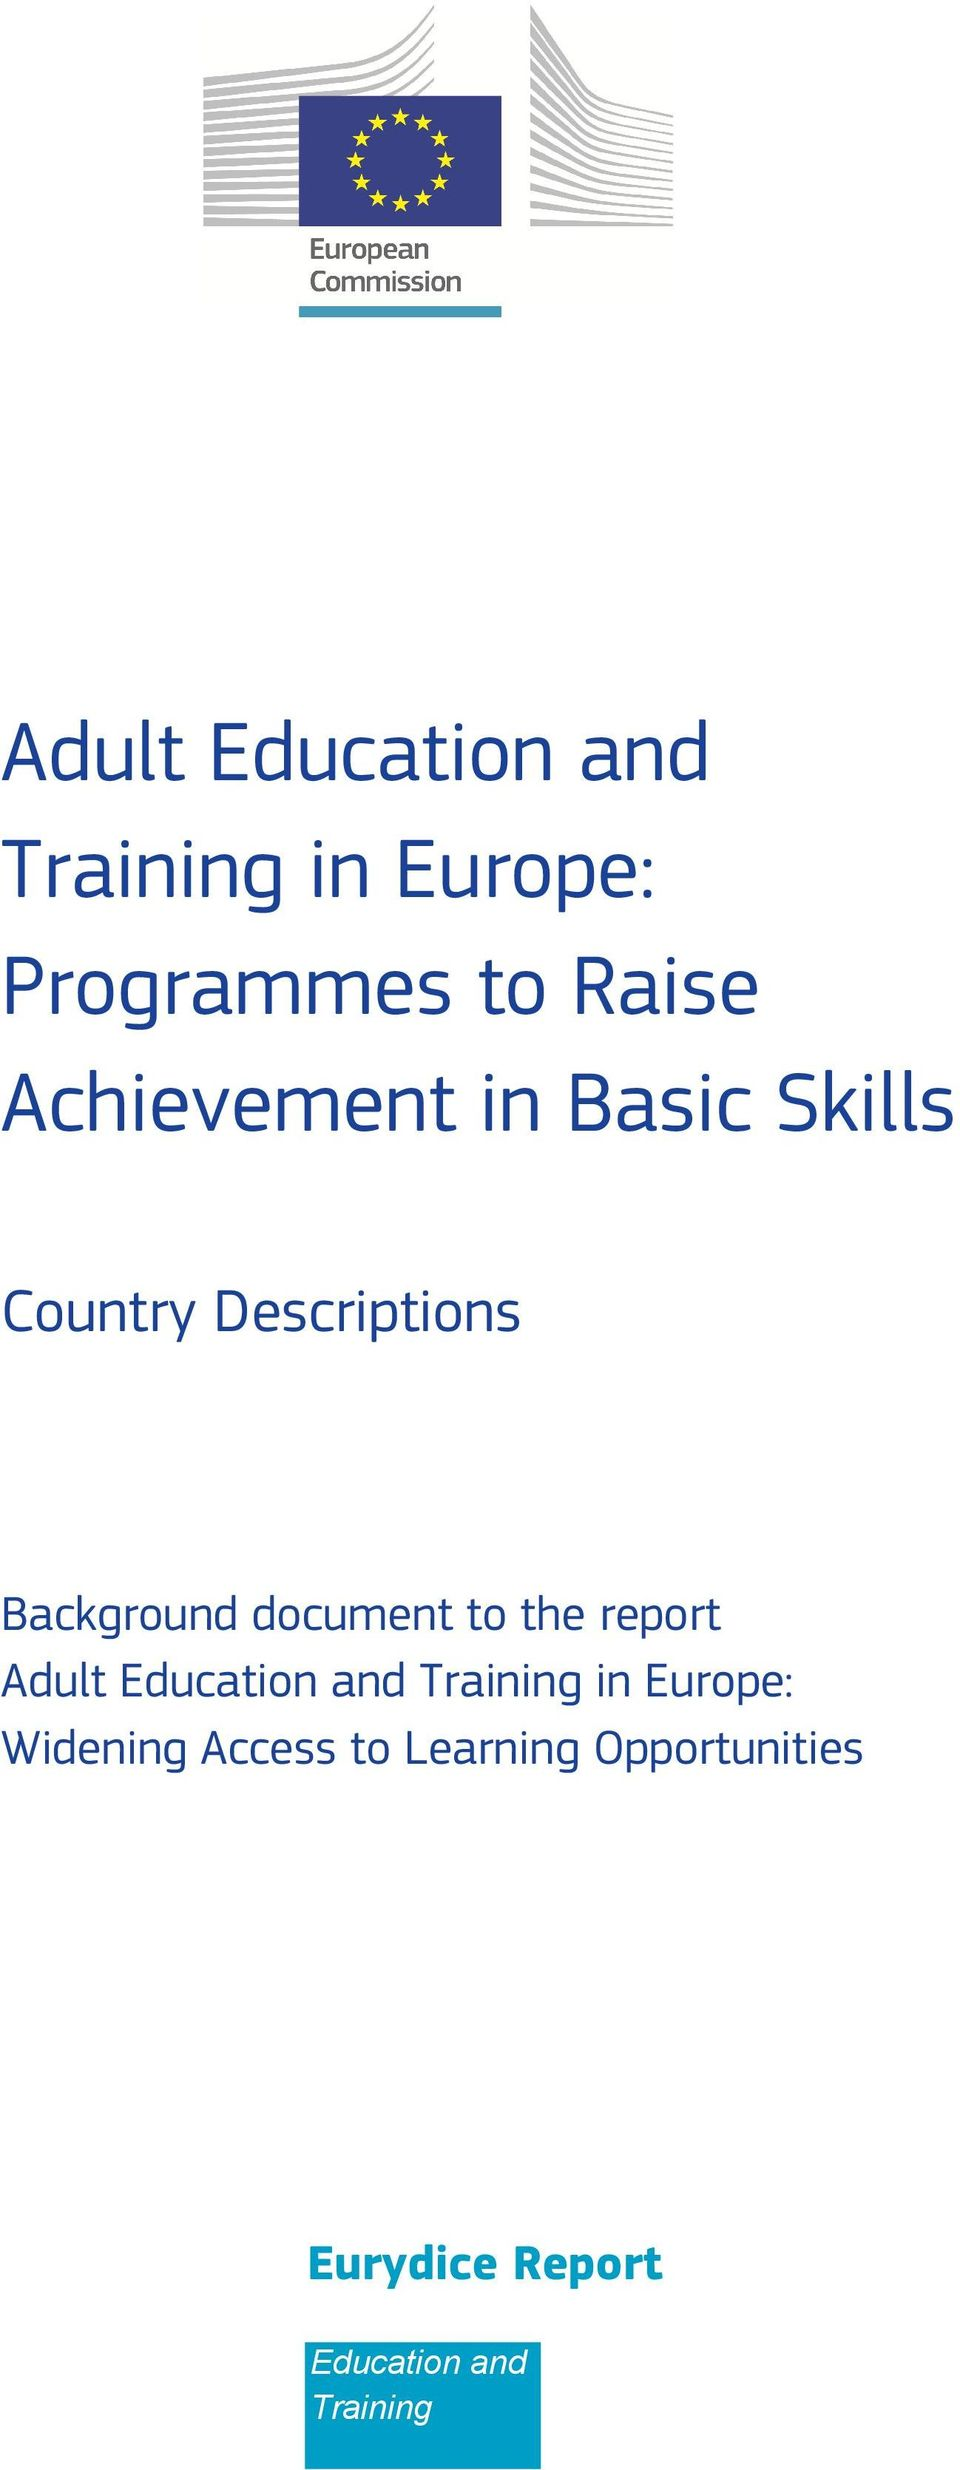 document to the report Adult Education and Training in Europe: